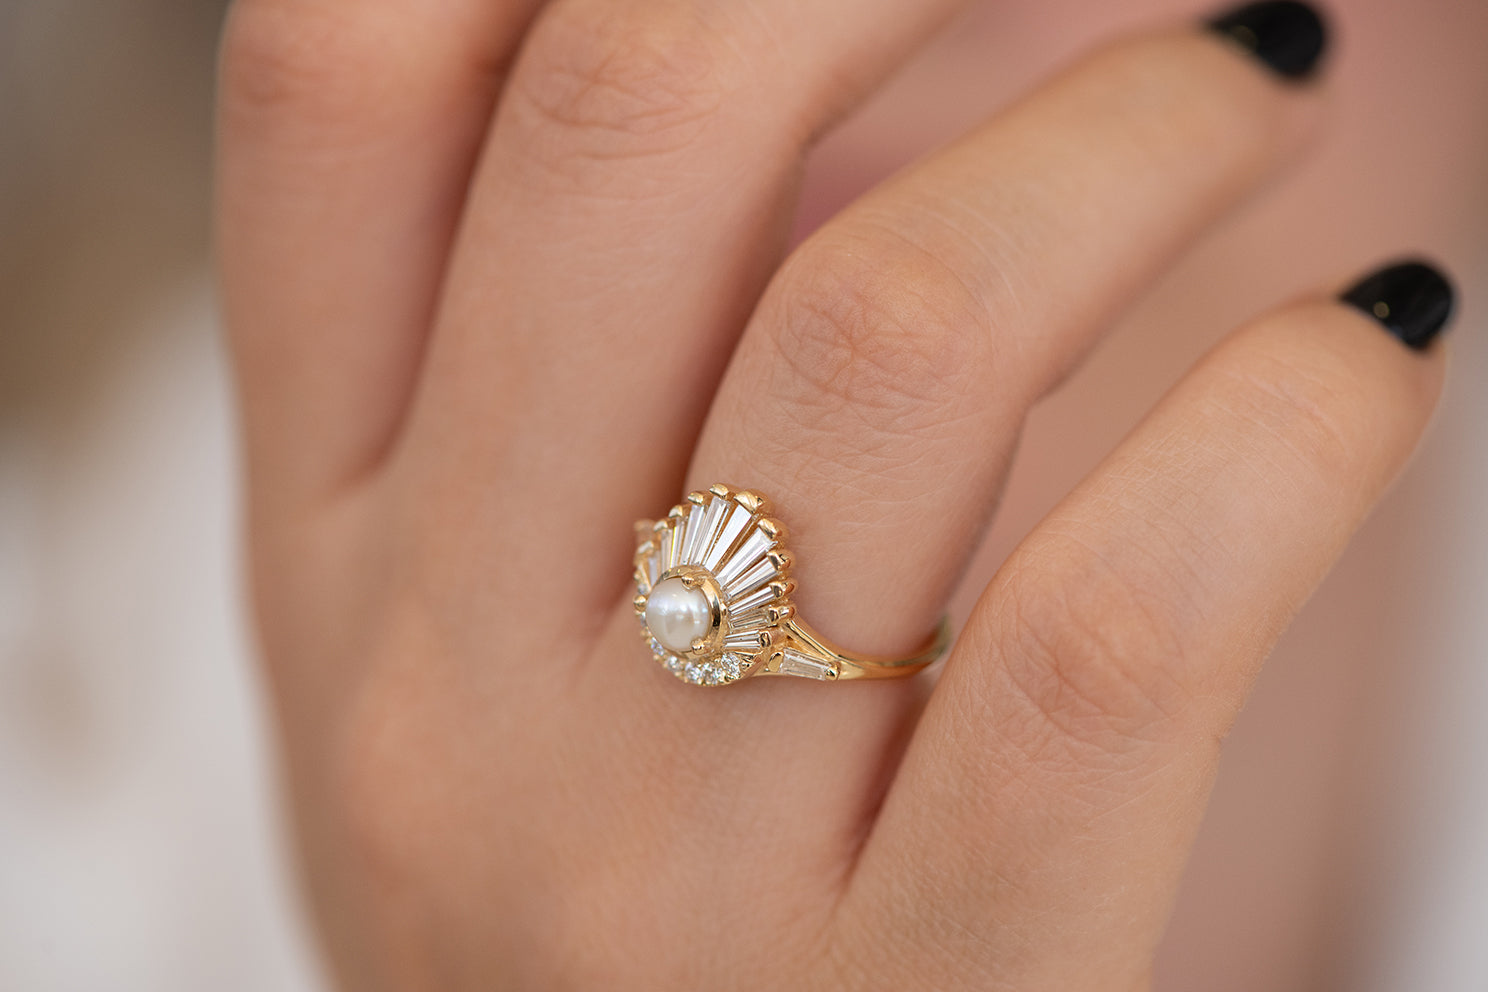 Diamond and Pearl Engagement Ring - Baguette Diamond Shell Ring on Hand side view